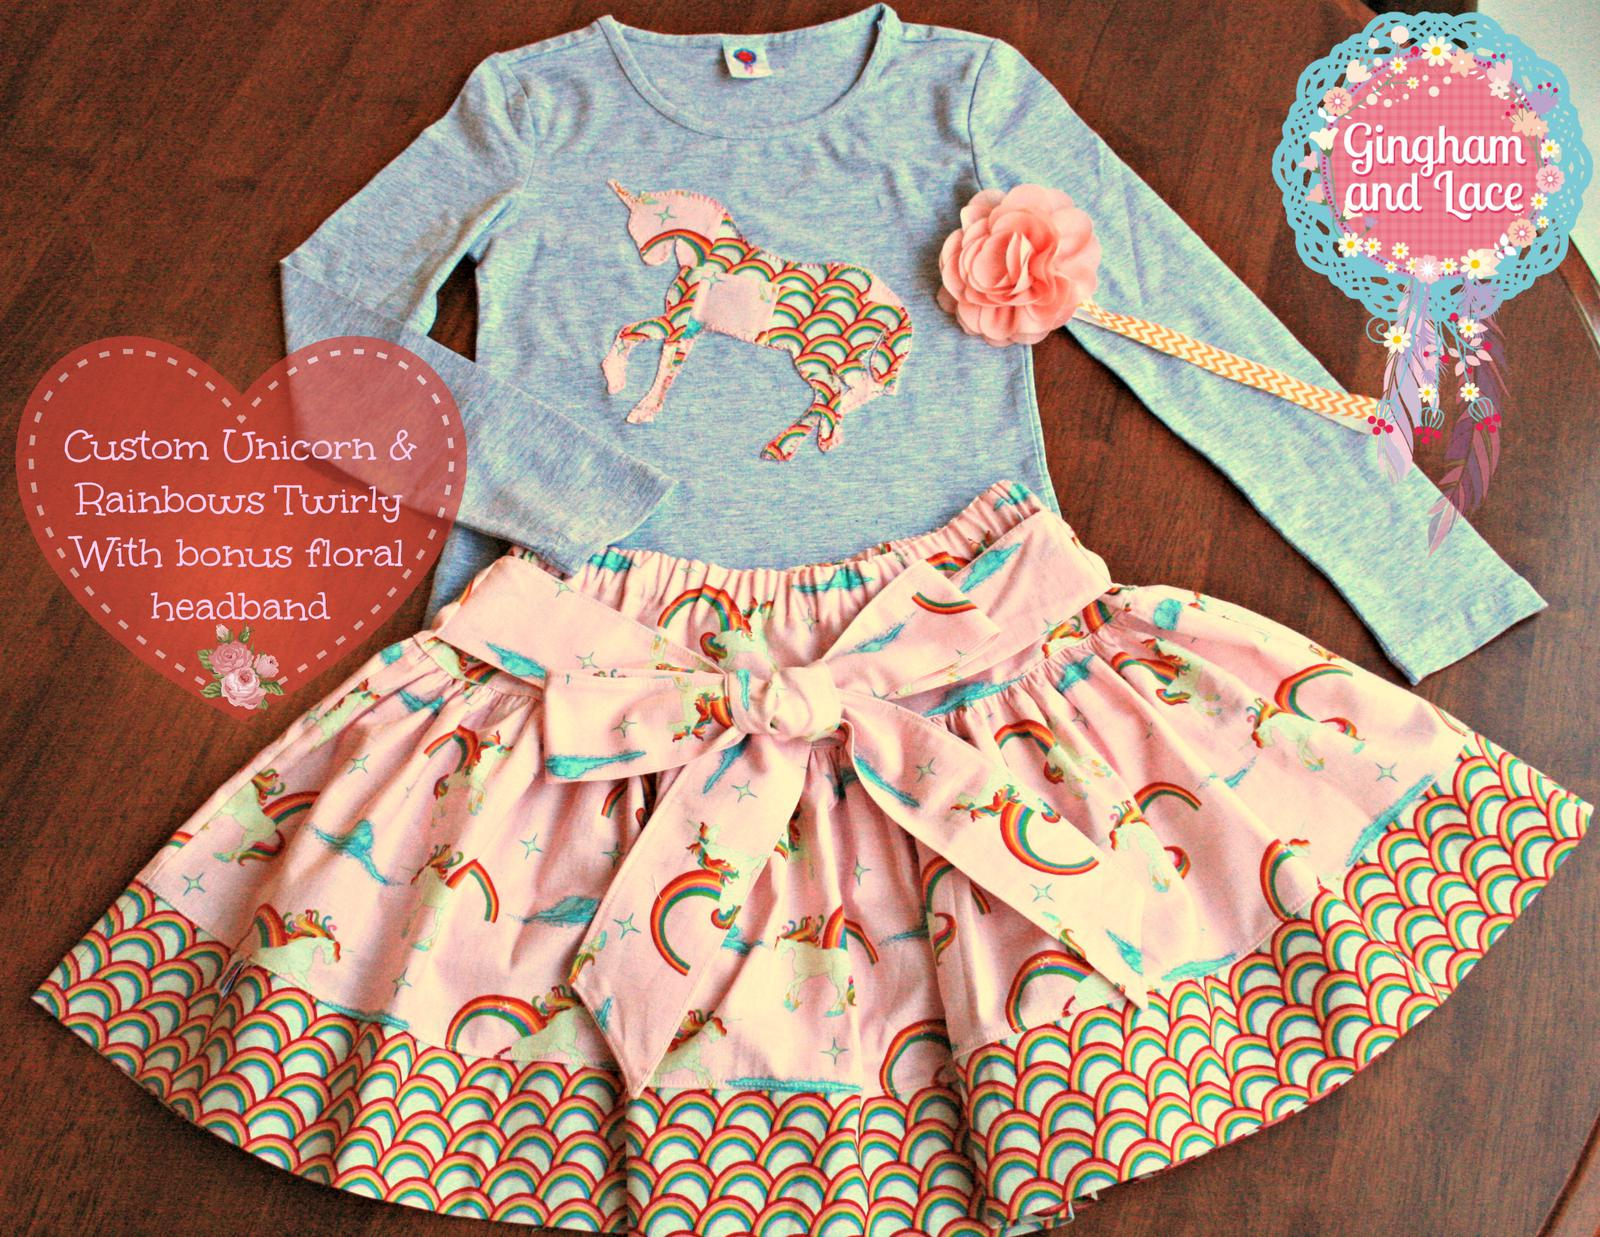 Twirly skirt and top combo